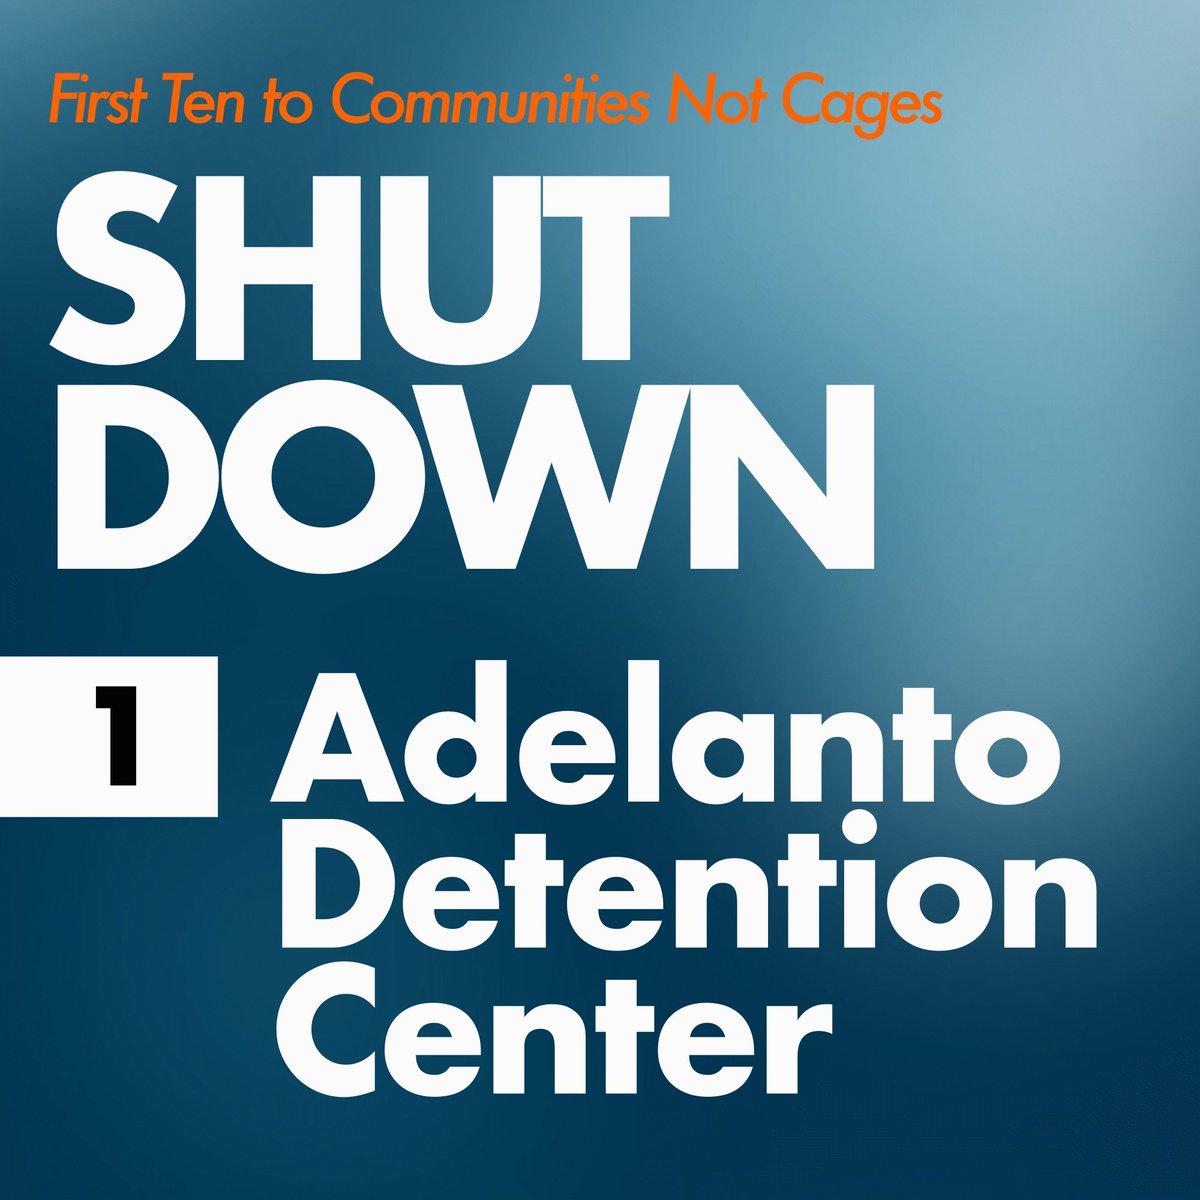 """Today, we're launching the """"First Ten to Communities Not Cages"""" campaign, demanding the shut down of 10 immigration detention centers during the first year of the Biden administration.   Learn more about the campaign:  #FirstTen #CommunitiesNotCages 1/15"""